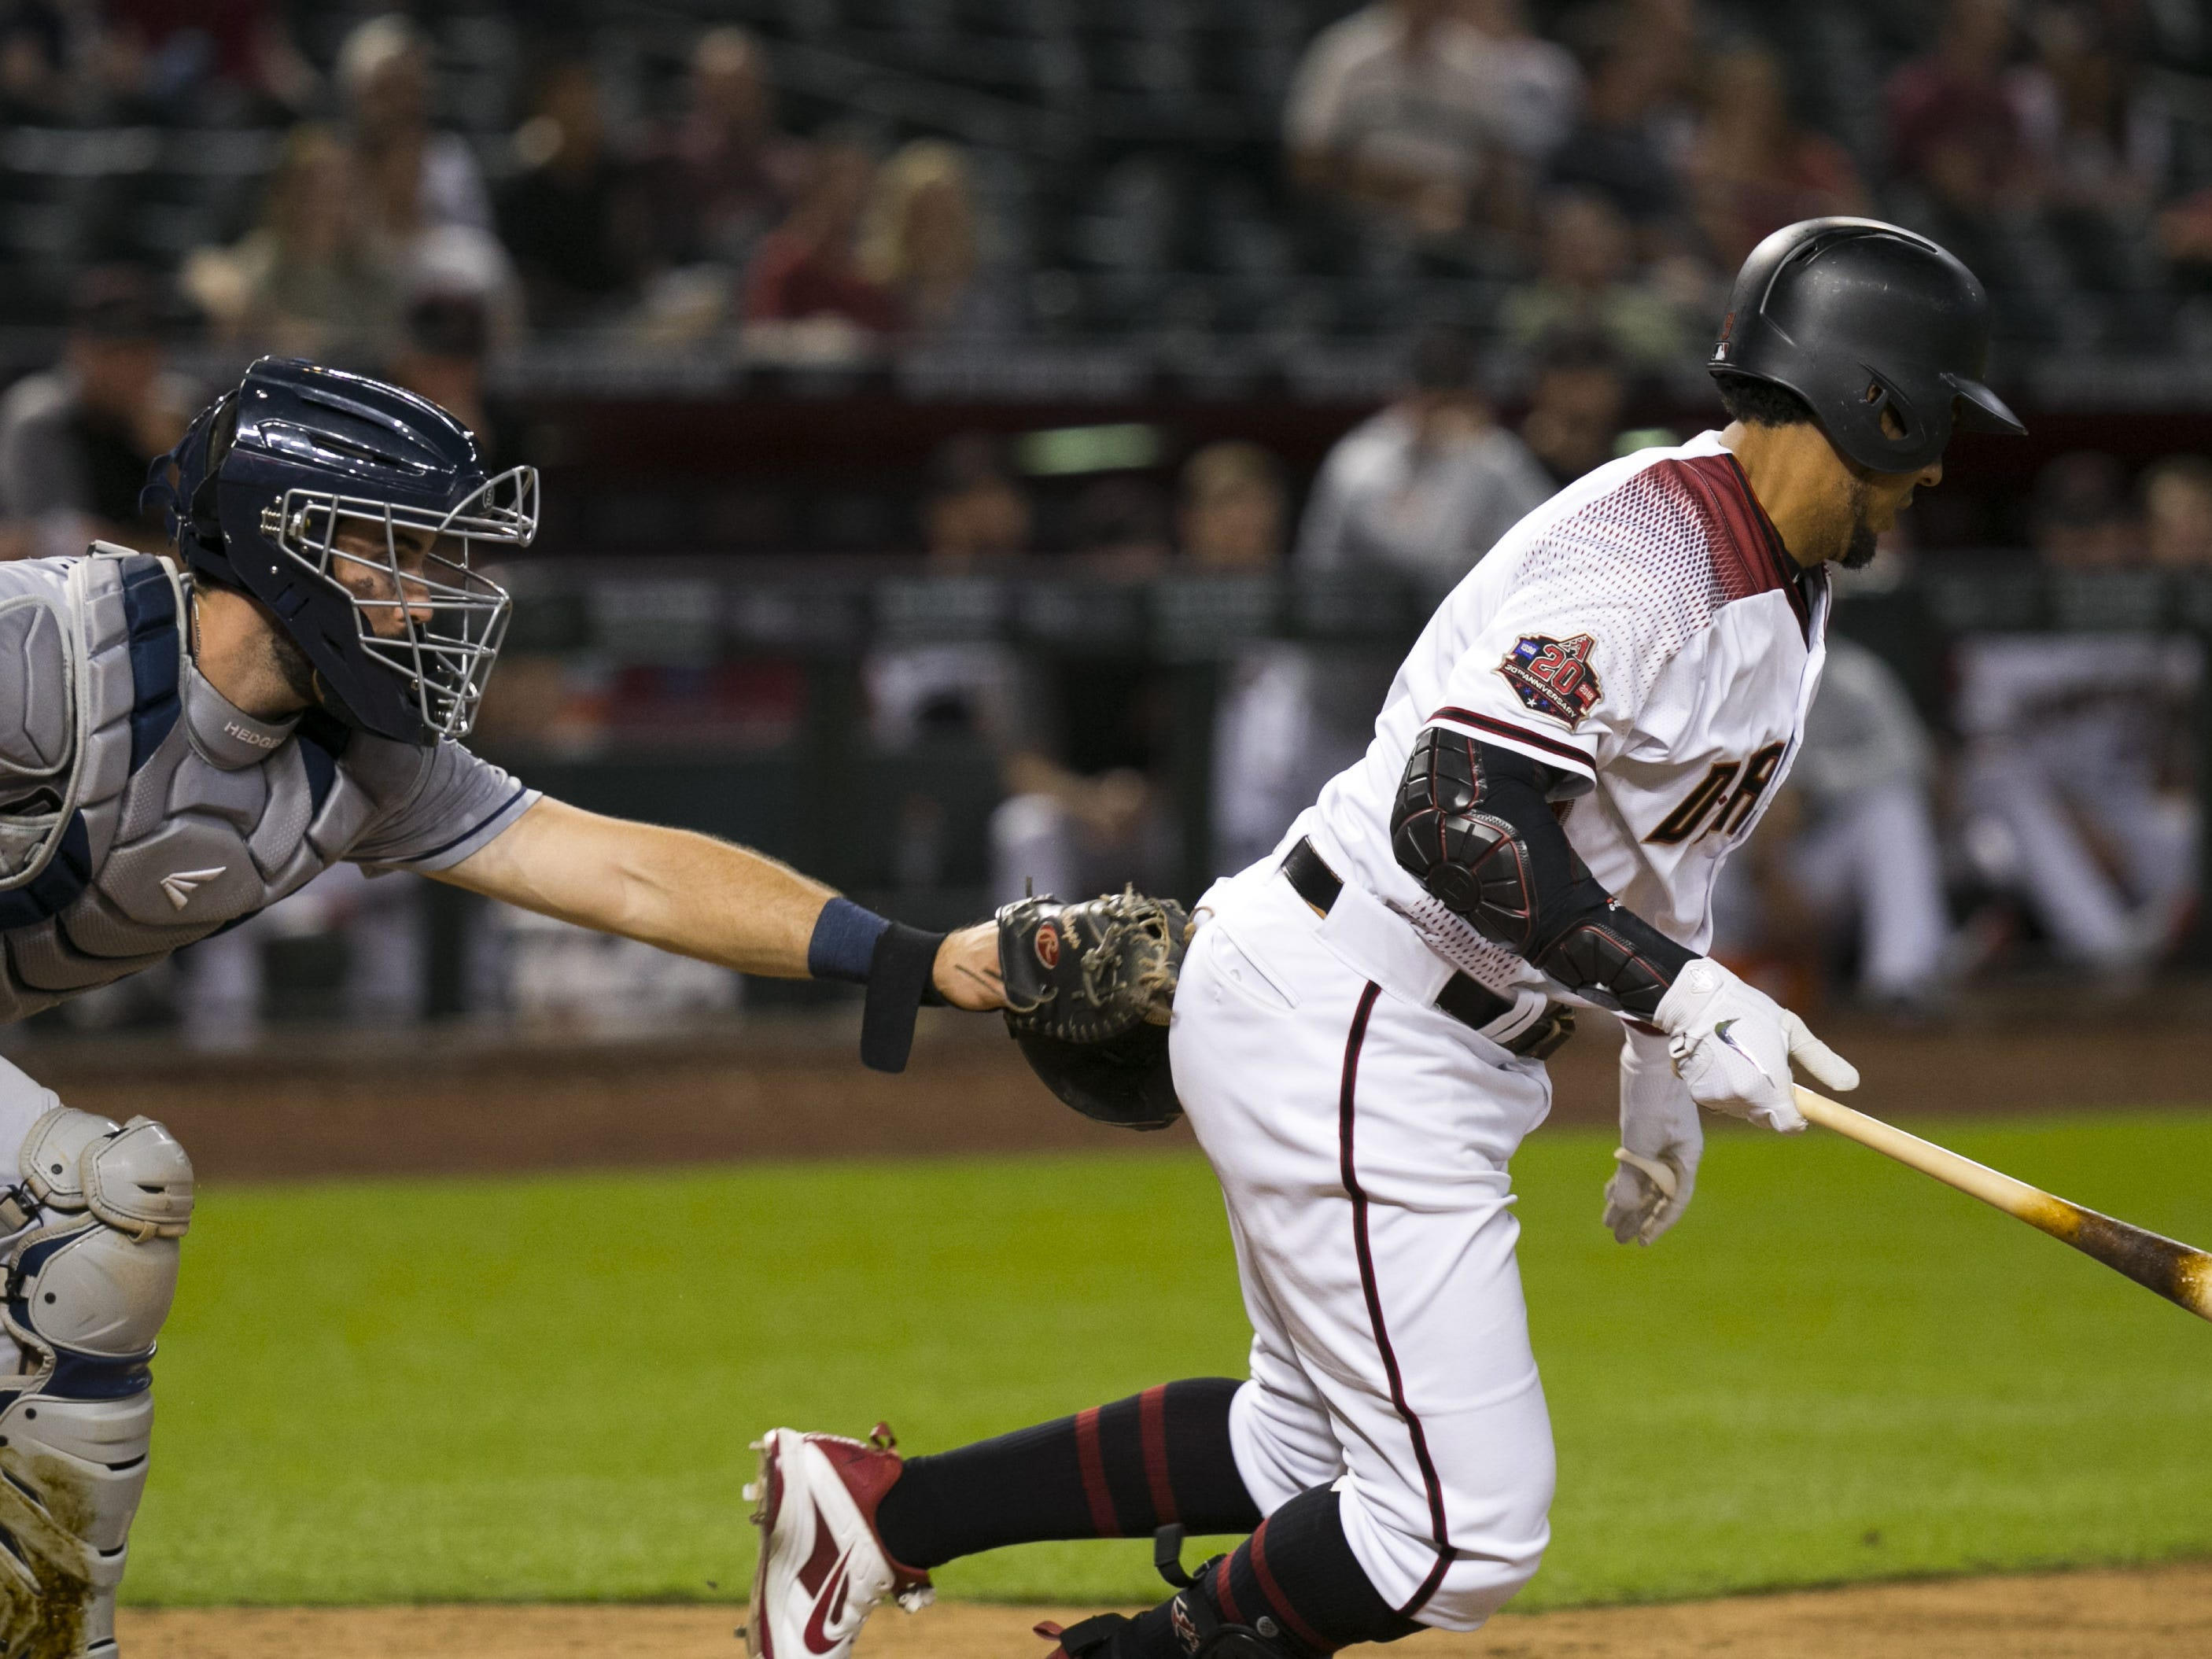 Padres catcher Austin Hedges tags out the  Diamondbacks John Jay on the final out of the game at Chase Field in Phoenix on Monday, September 3, 2018. The Padres won the game 6-2.